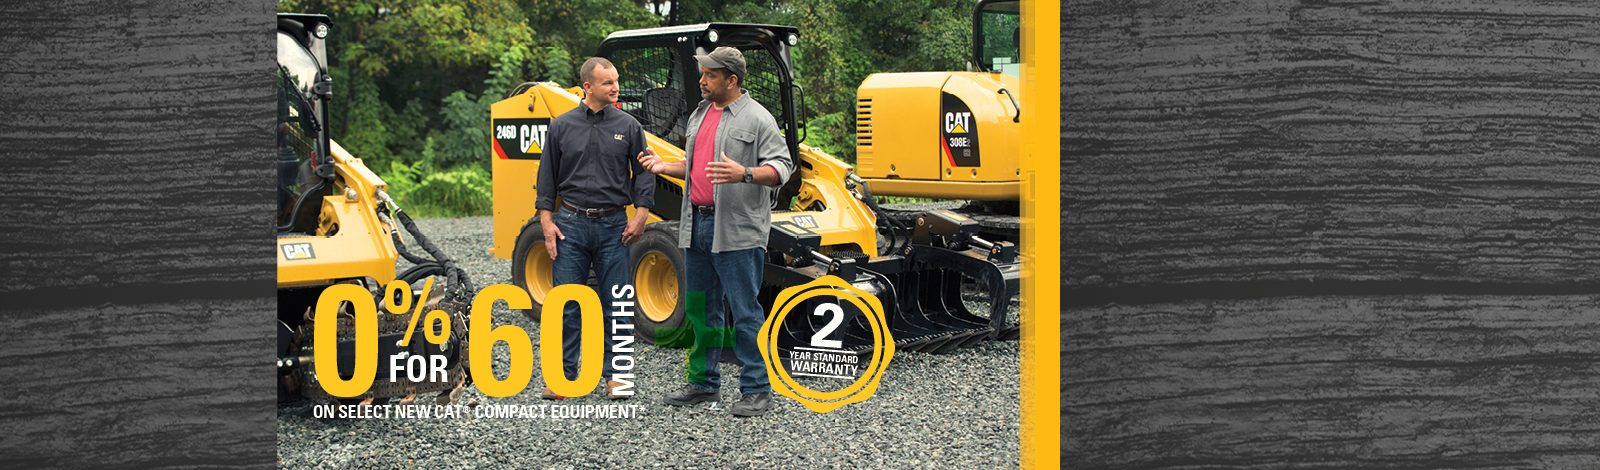 0% for 60 Months on Select New Cat Compact equipment